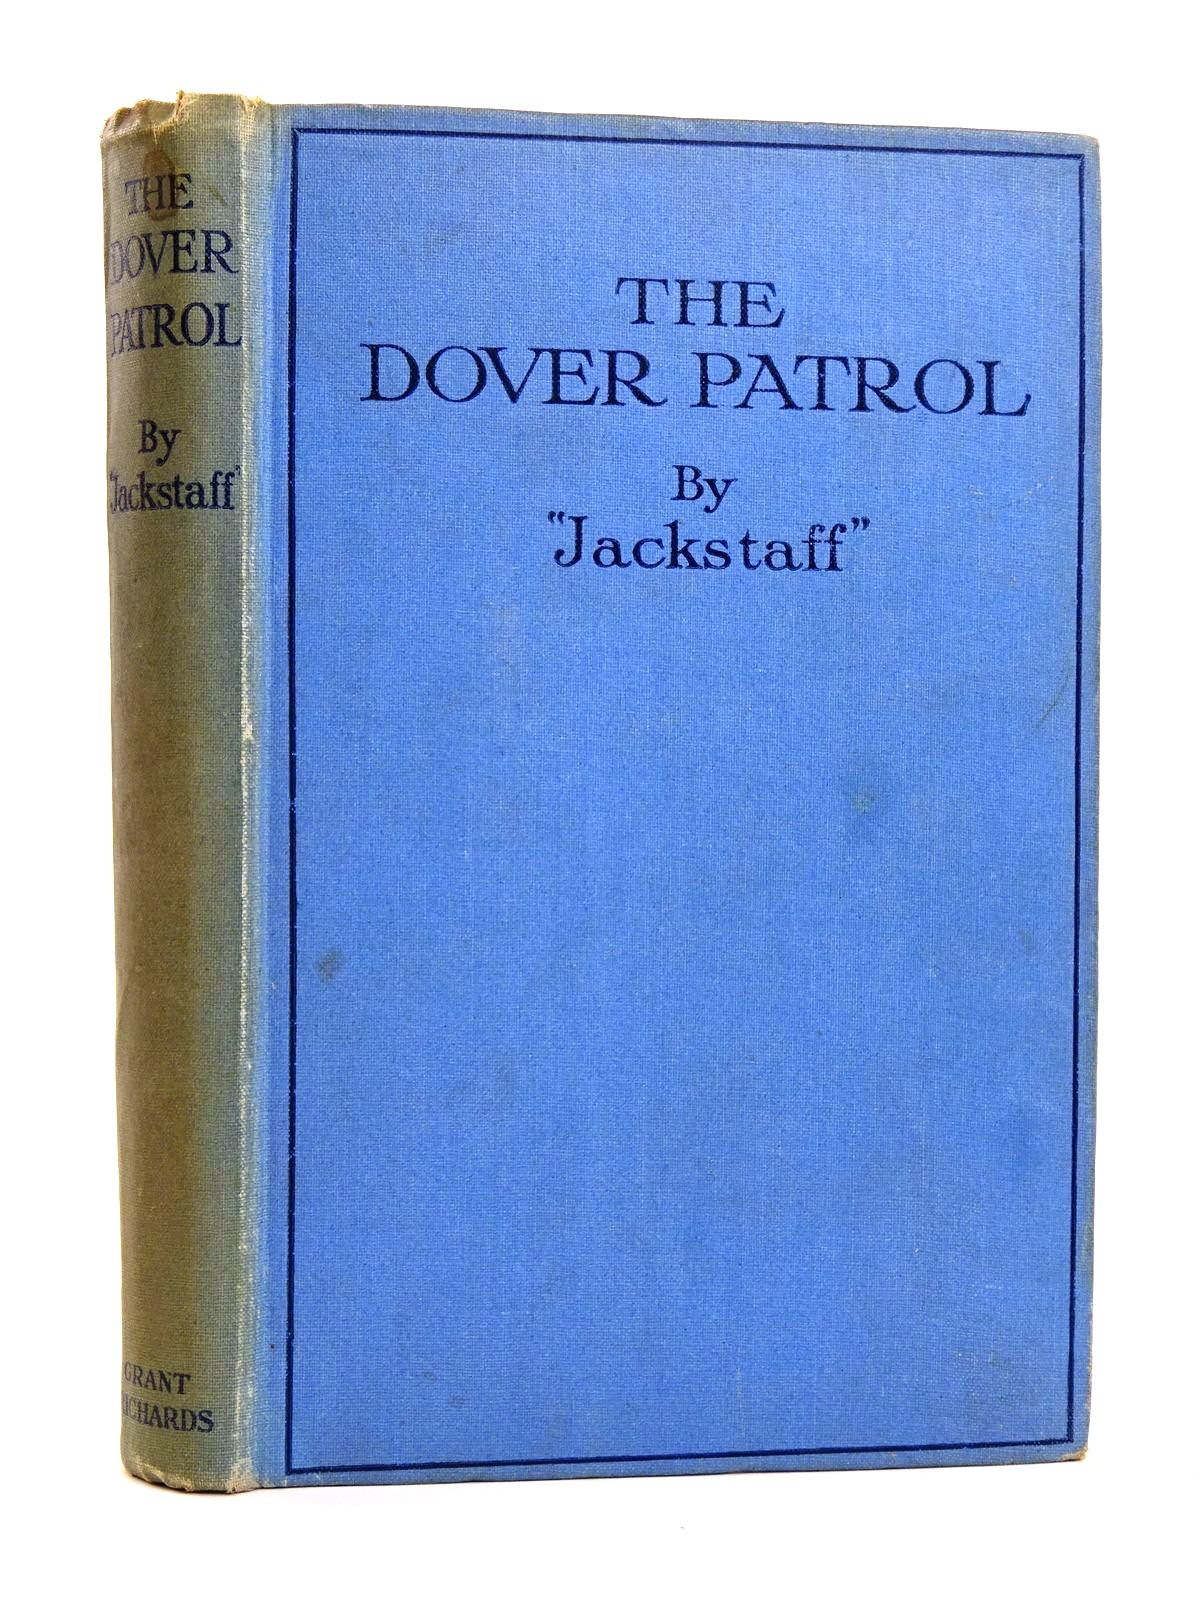 Photo of THE DOVER PATROL written by Bennett, J.J. Wilson, H.W. published by Grant Richards Ltd. (STOCK CODE: 1818282)  for sale by Stella & Rose's Books